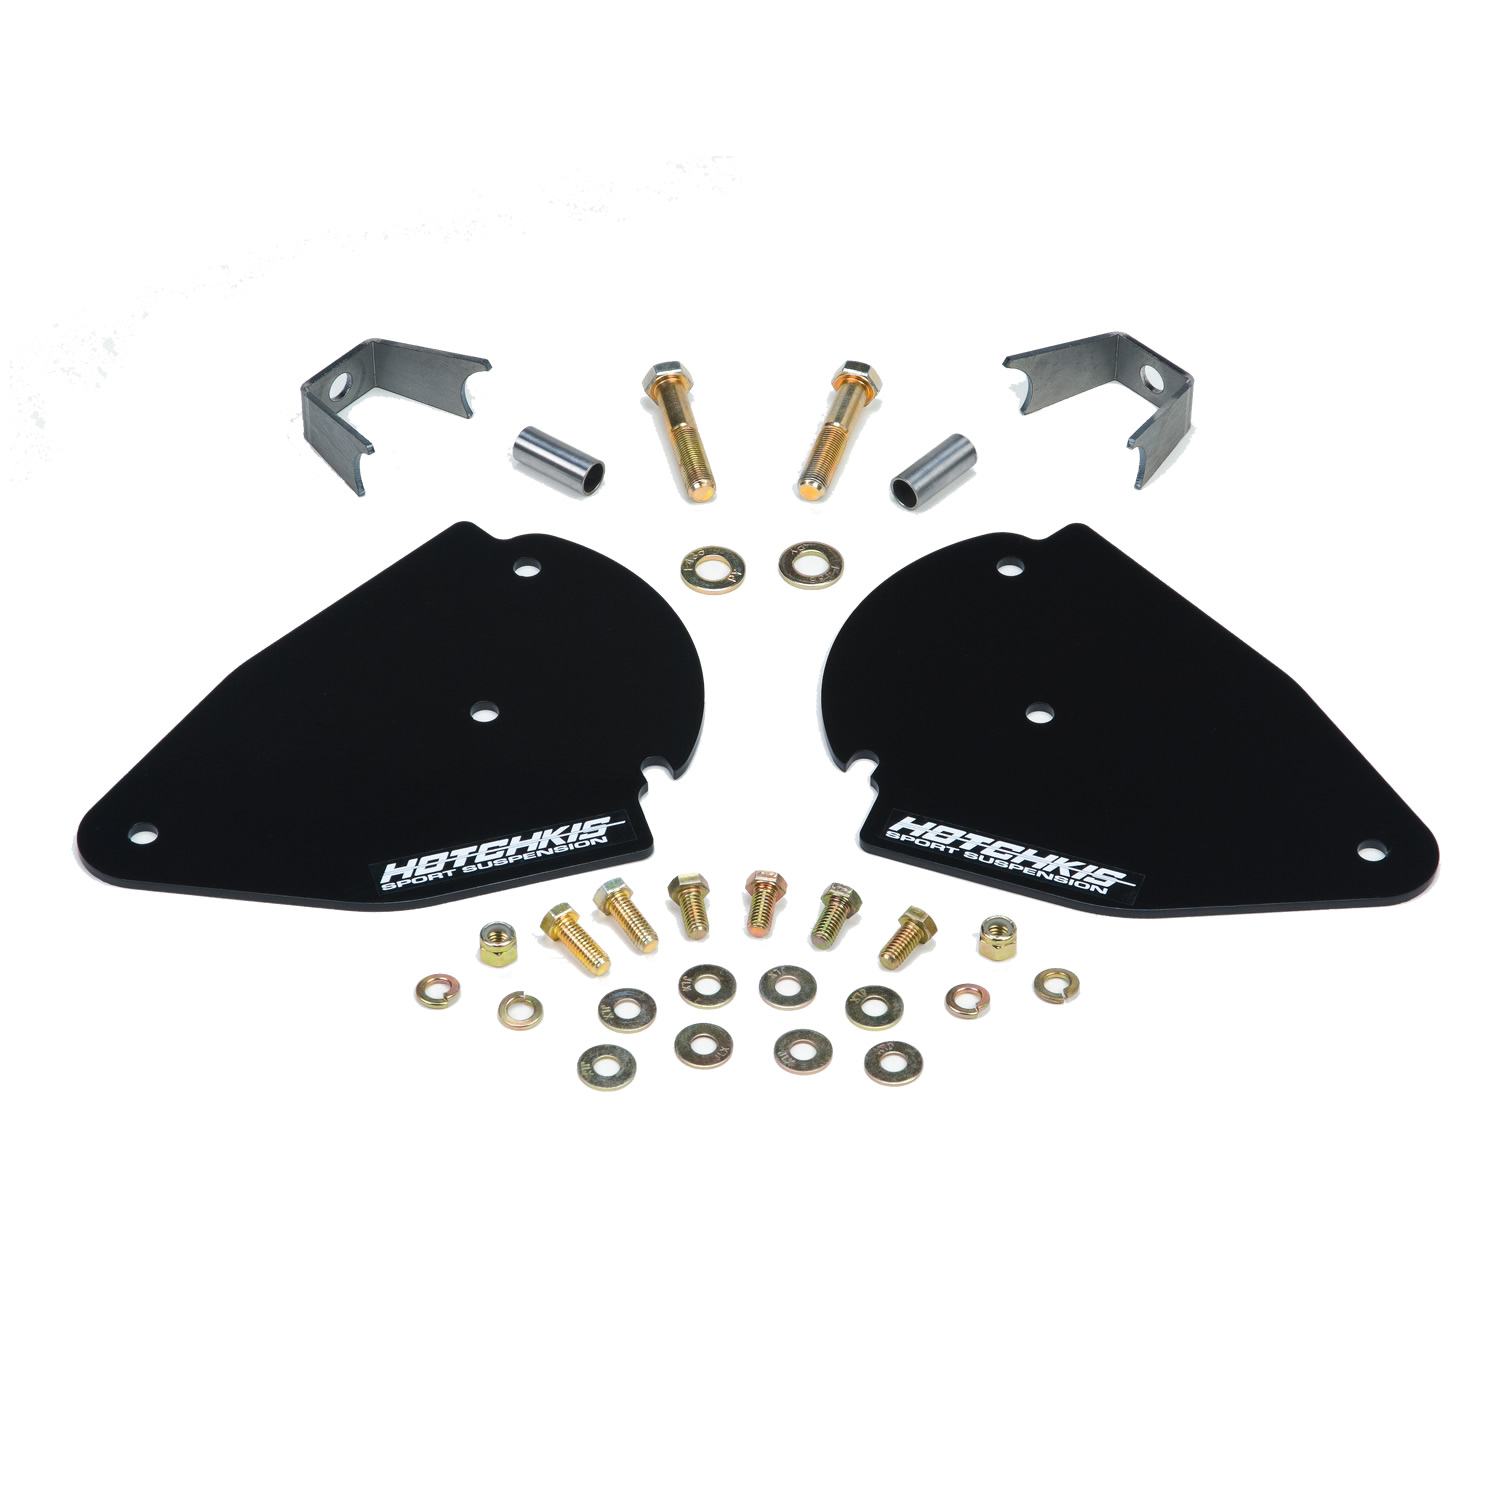 Air Bag Adapter Kit  B-Body  59-64 Chevrolet Bel Air  Biscayne  Caprice  Impala.